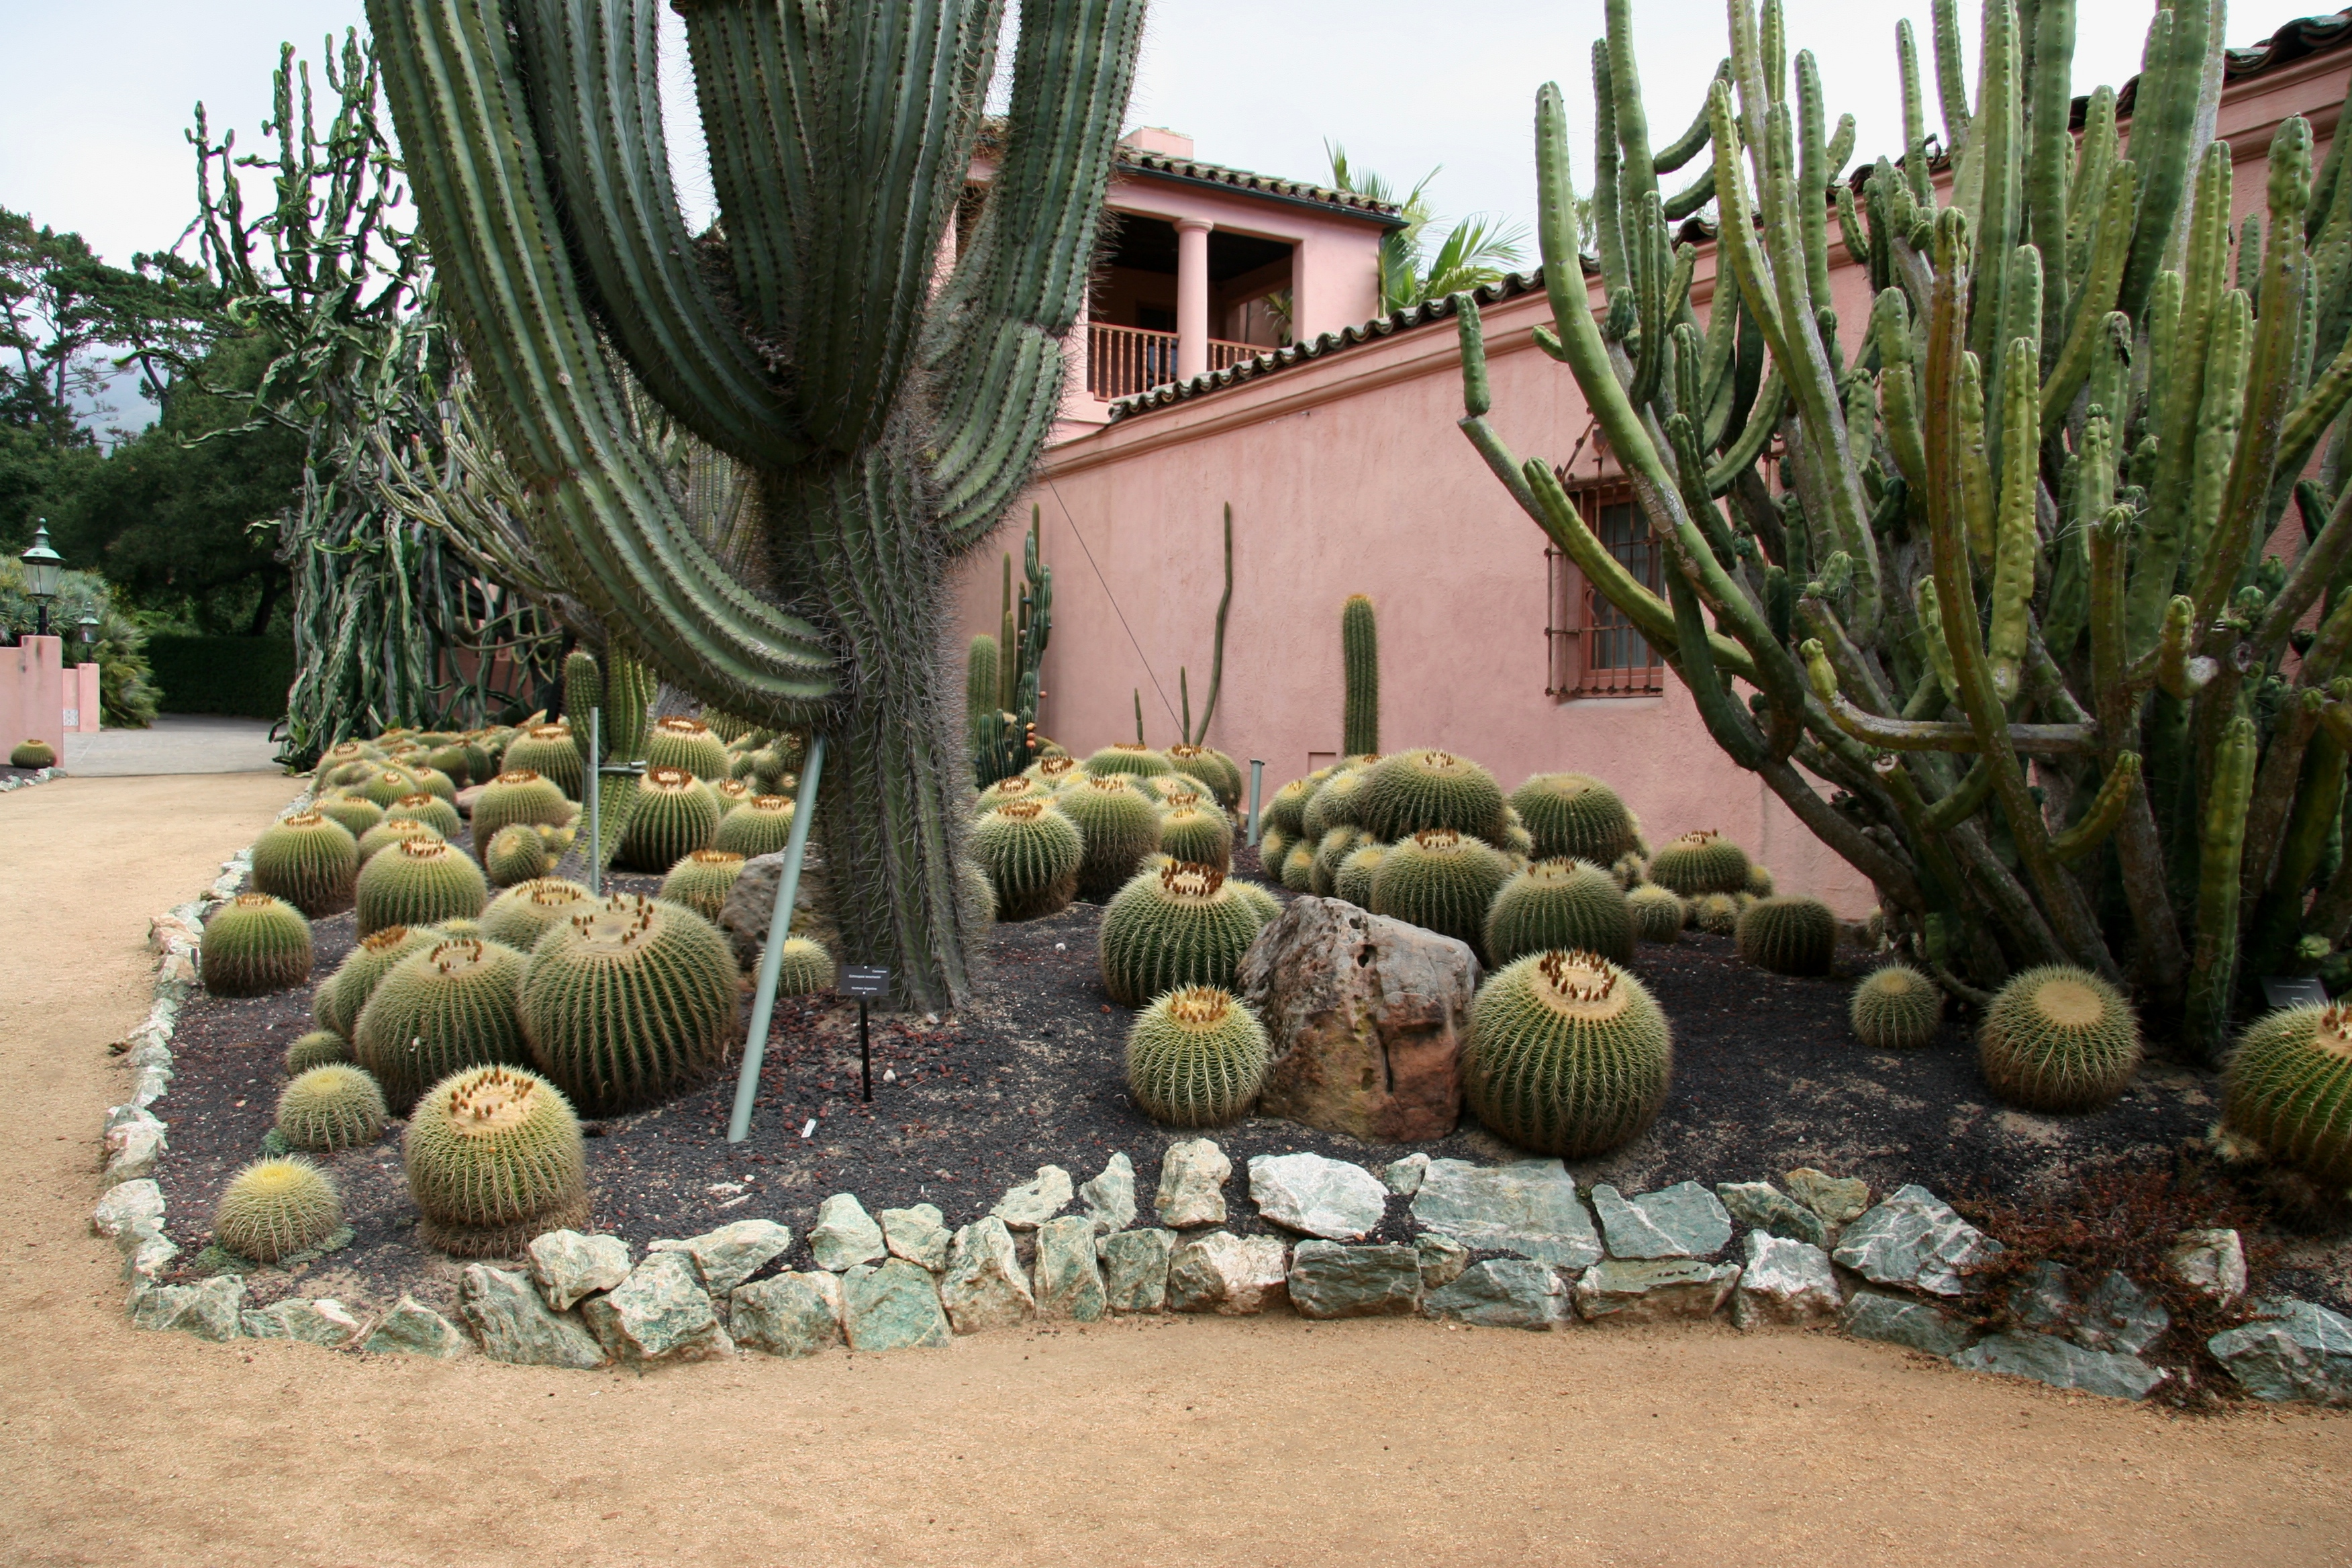 File:Flickr   Brewbooks   Cacti And Euphorbia Garden, Lotusland (1).